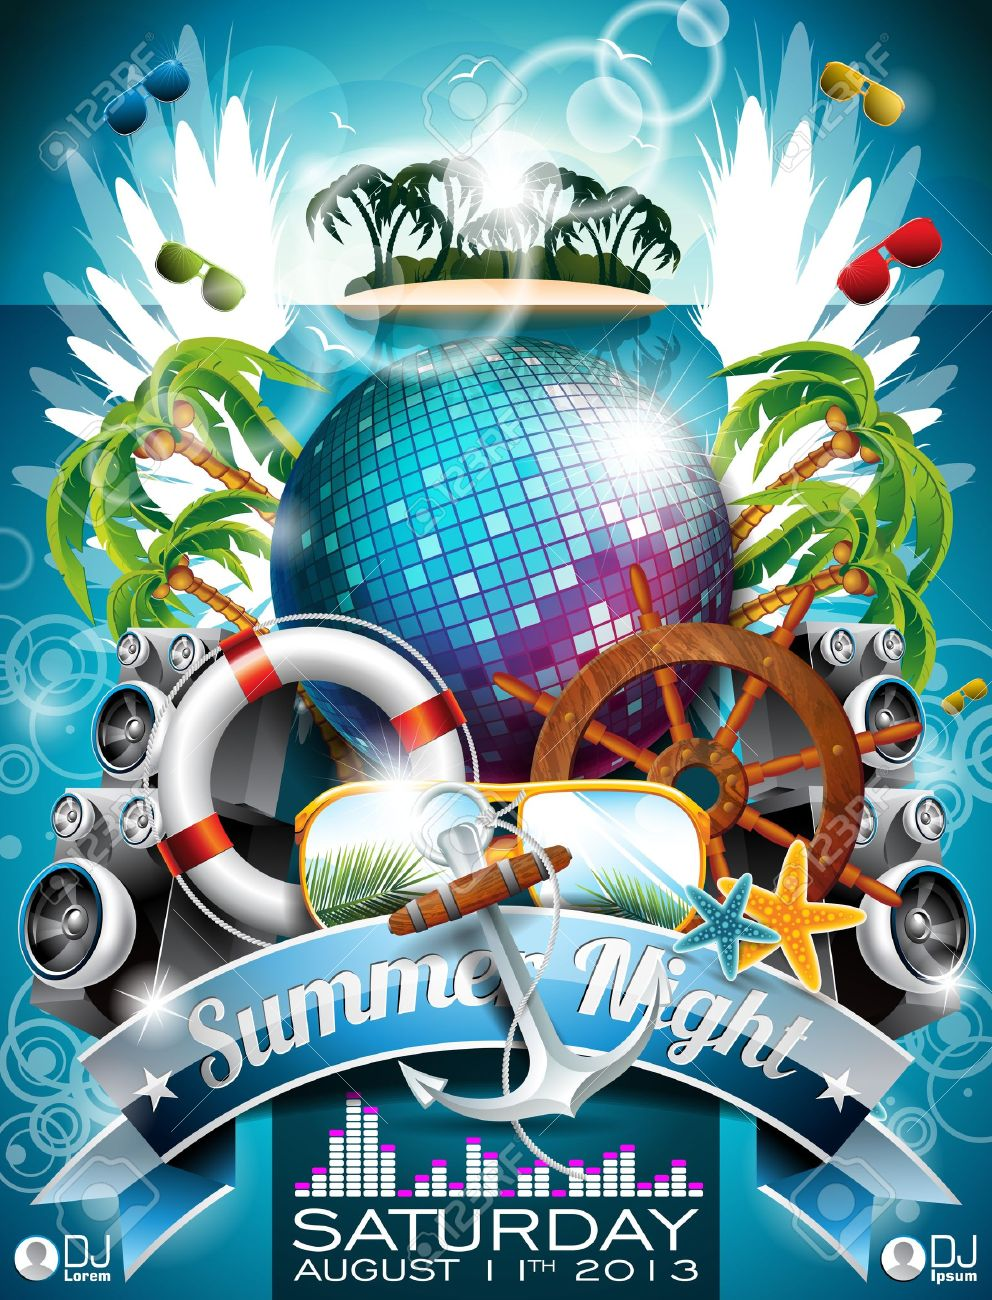 Summer Beach Party Flyer Design with disco ball and shipping elements on tropical background. Stock Vector - 20352691